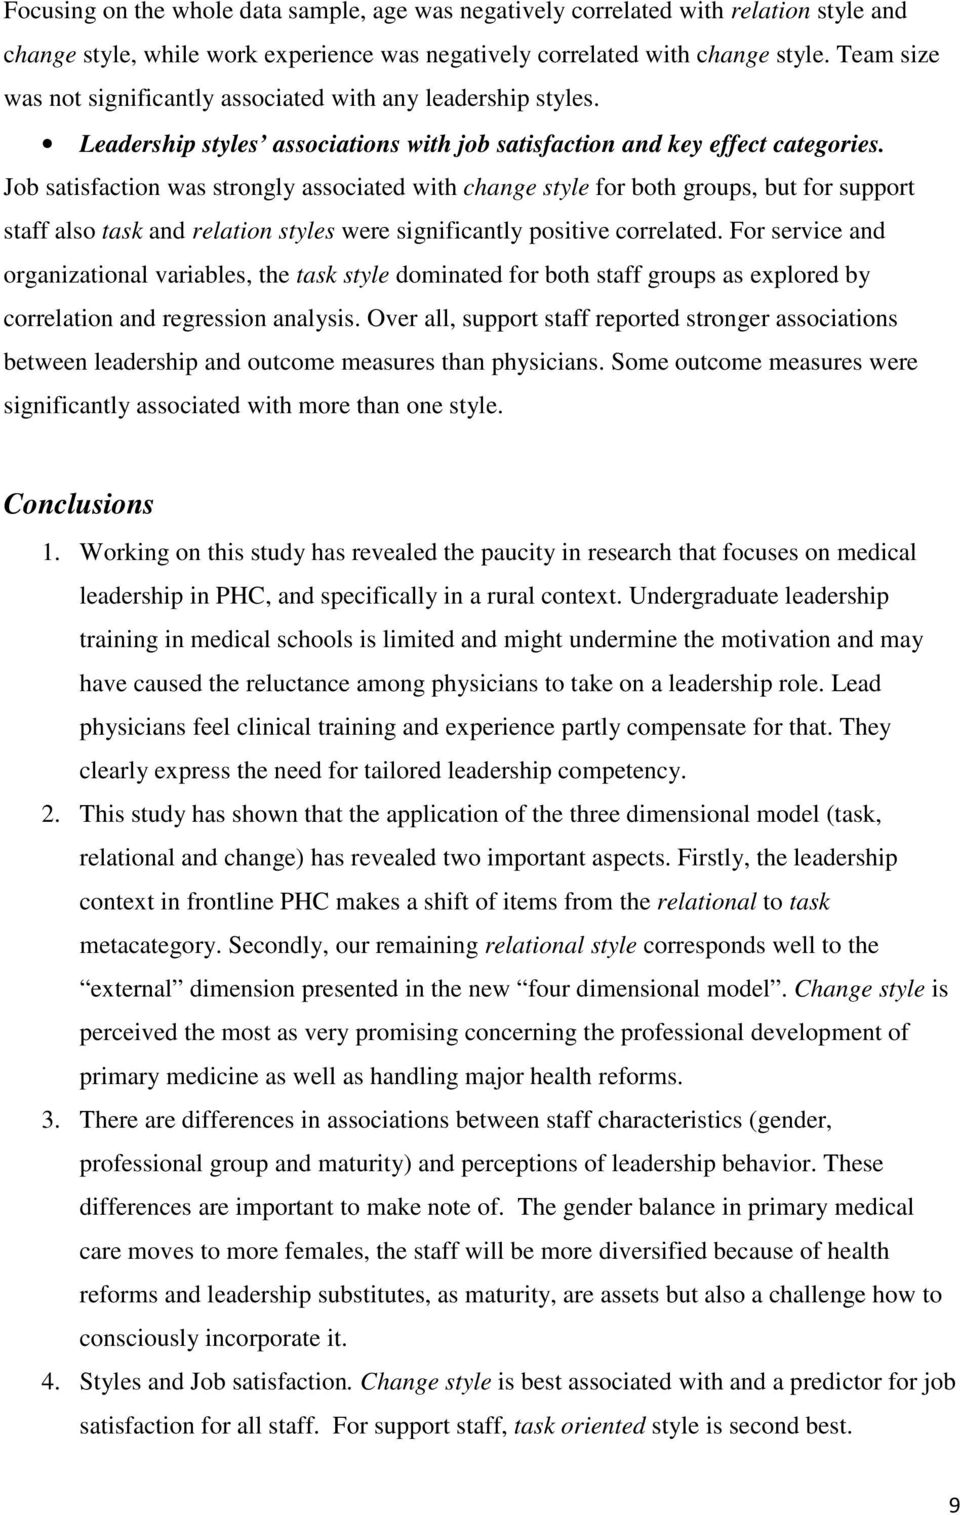 Job satisfaction was strongly associated with change style for both groups, but for support staff also task and relation styles were significantly positive correlated.